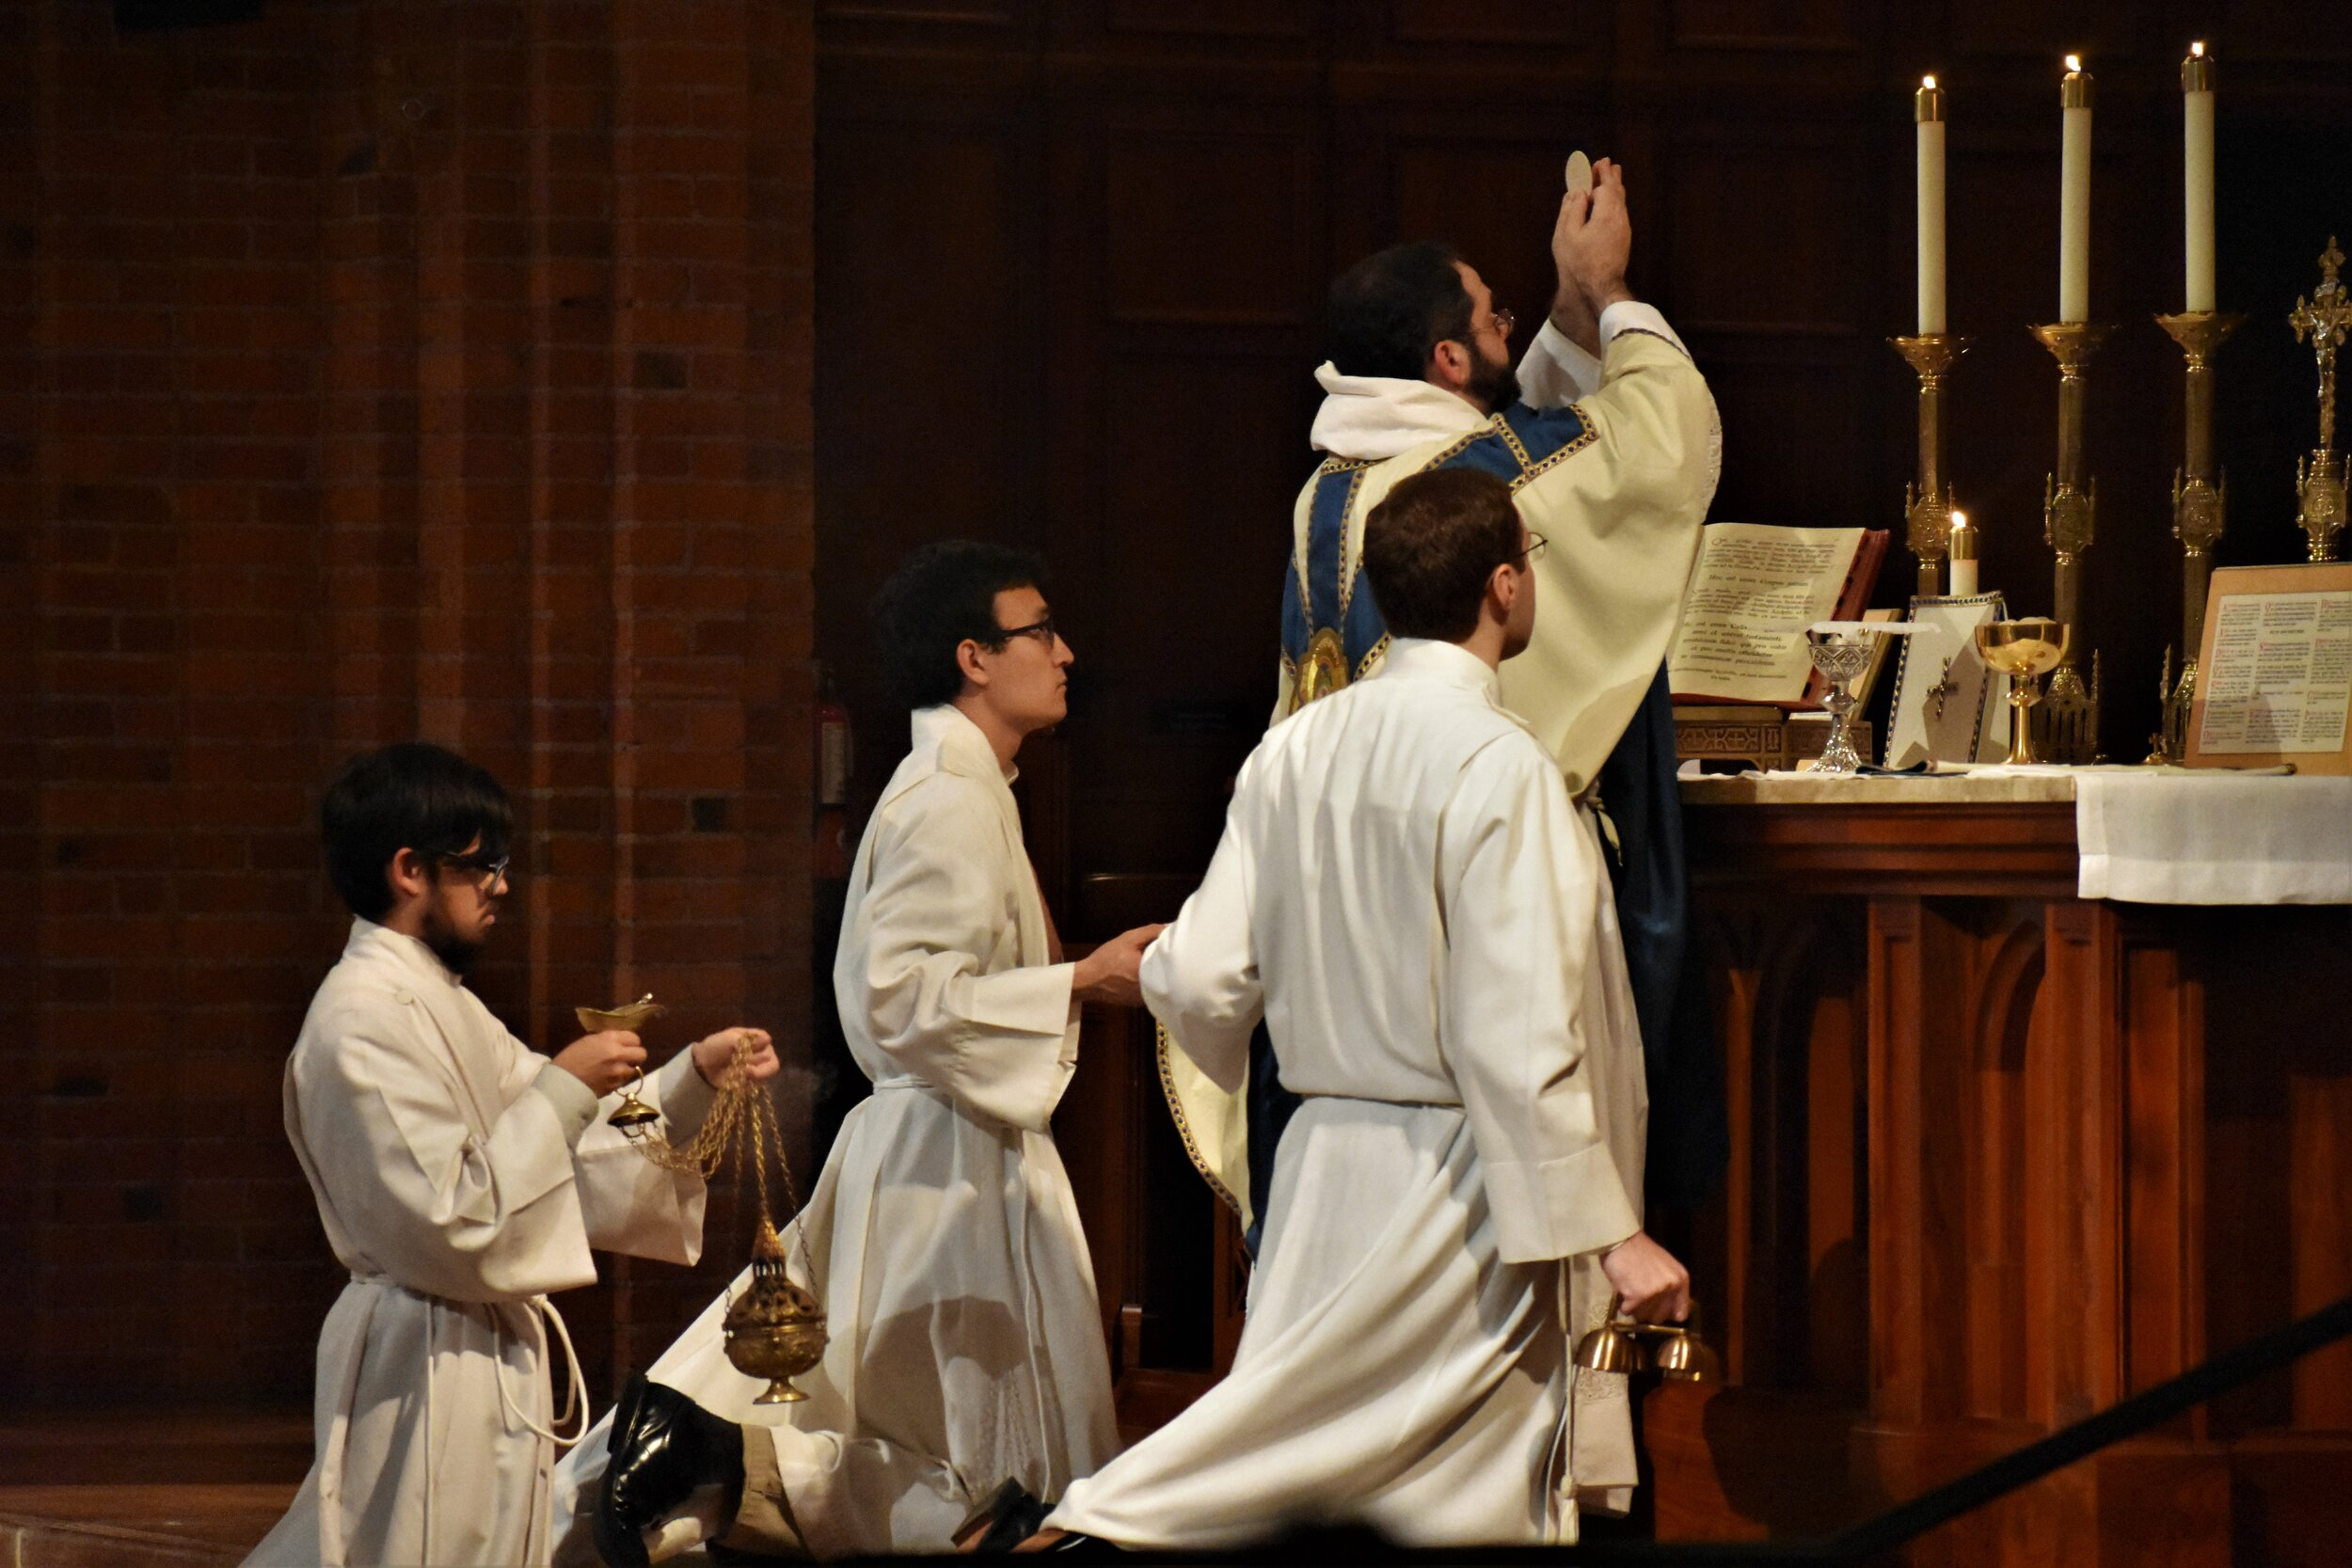 October 2019 Choral Mass in the Dominican Rite